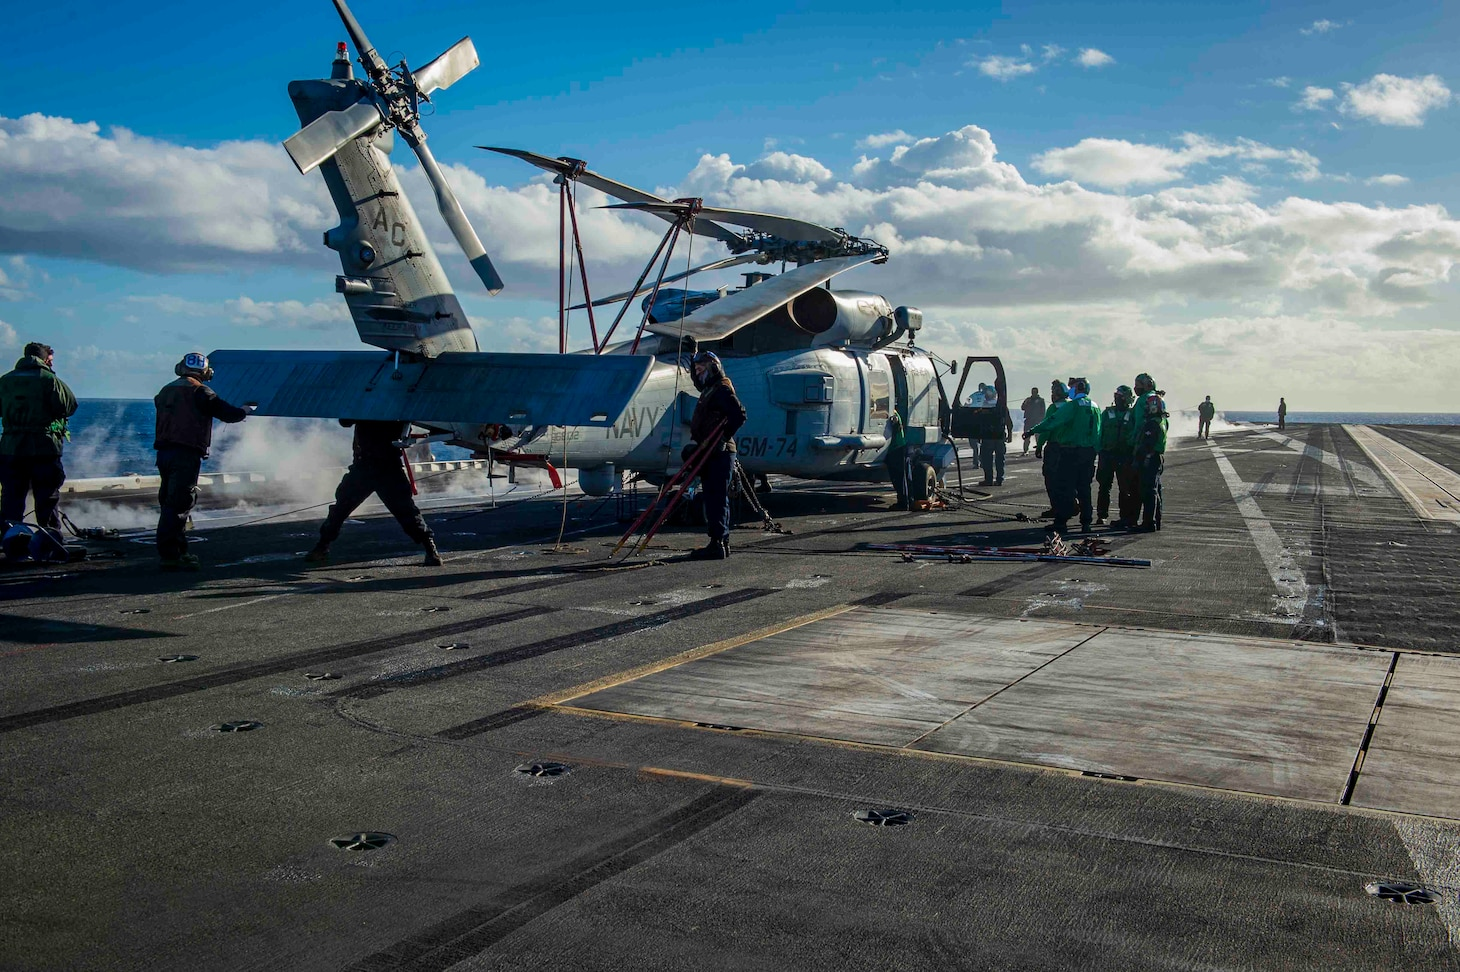 """210228-N-OB471-1071 ATLANTIC OCEAN (Feb. 28, 2021) Sailors perform maintenance on an MH-60R Sea Hawk, attached to the """"Swamp Foxes"""" of Helicopter Maritime Strike Squadron (HSM) 74, aboard the Nimitz-class aircraft carrier USS Dwight D. Eisenhower (CVN 69), in the Atlantic Ocean, February 28, 2021. Ike is on a routine deployment supporting U.S. national security interests in Europe and increasing theater cooperation and forward naval presence in the U.S. 6th fleet area of operations. (U.S. Navy photo by Mass Communication Specialist Seaman Jacob Hilgendorf/Released)"""